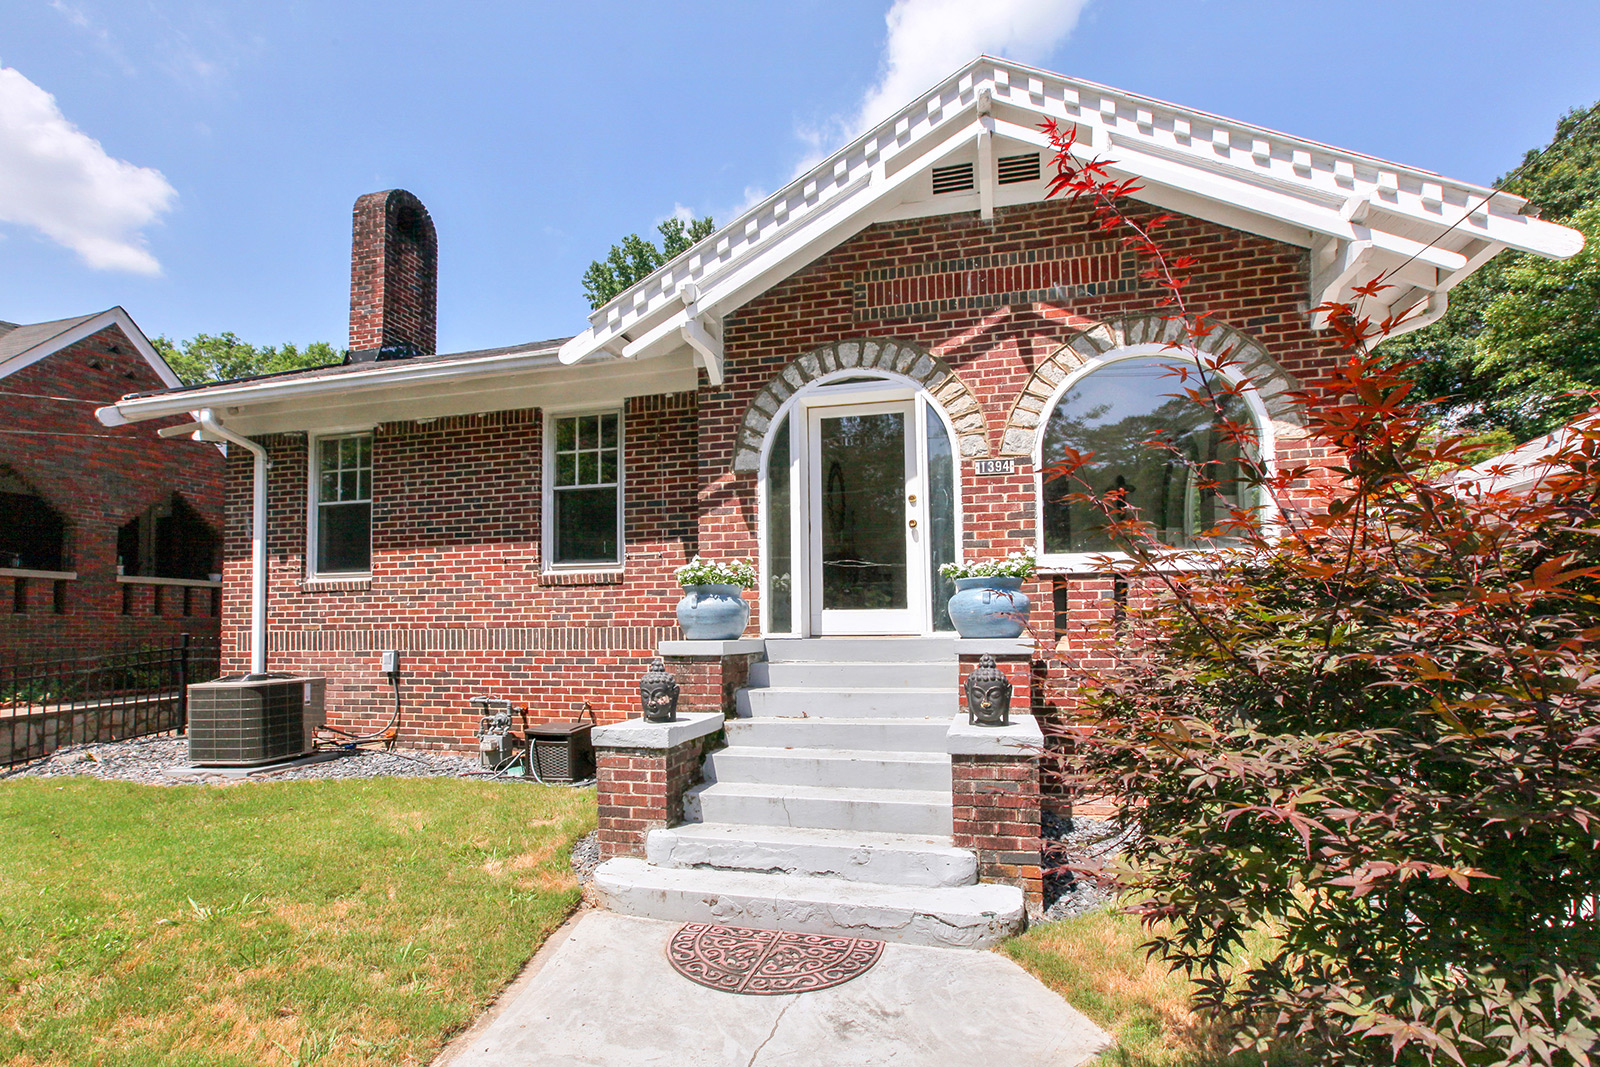 一戸建て のために 売買 アット Adorable hill-top bungalow with pool and hot tub! 1394 Monroe Drive Morningside, Atlanta, ジョージア 30324 アメリカ合衆国